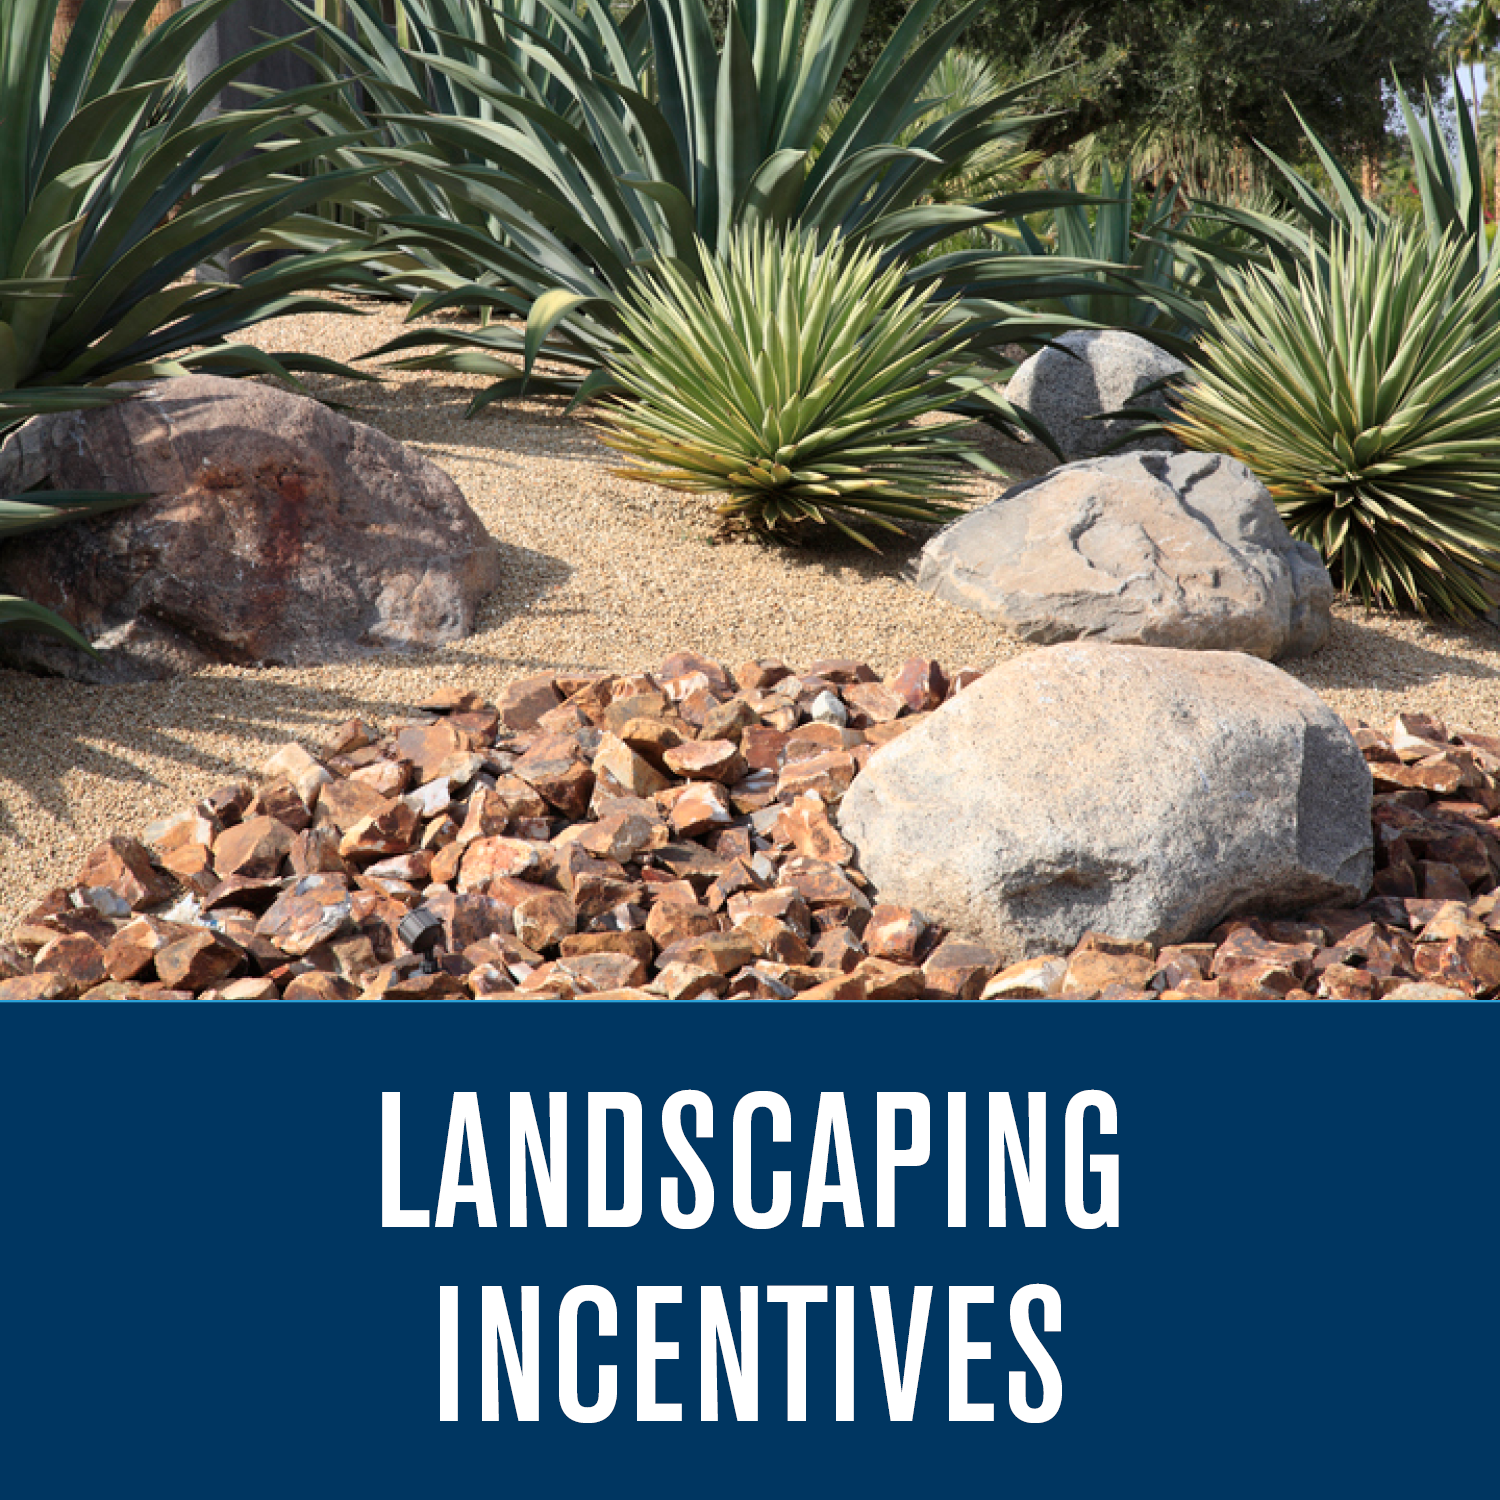 Landscaping Incentives